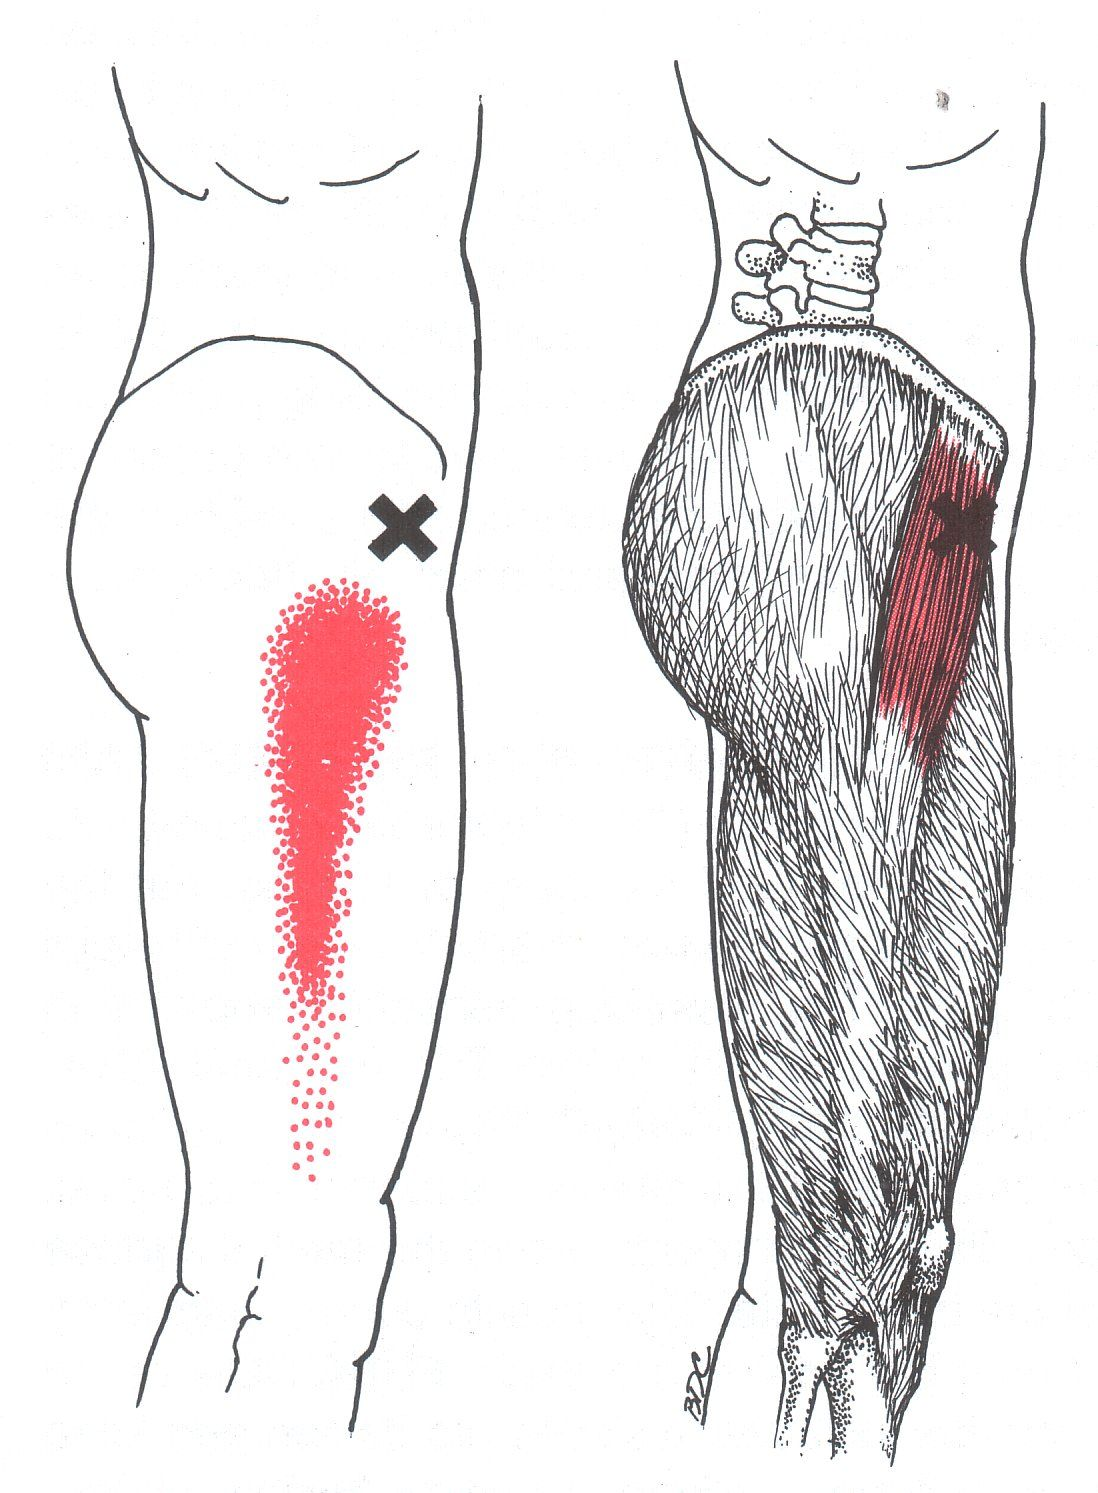 Tensor Fasciae Latae | The Trigger Point & Referred Pain Guide ...